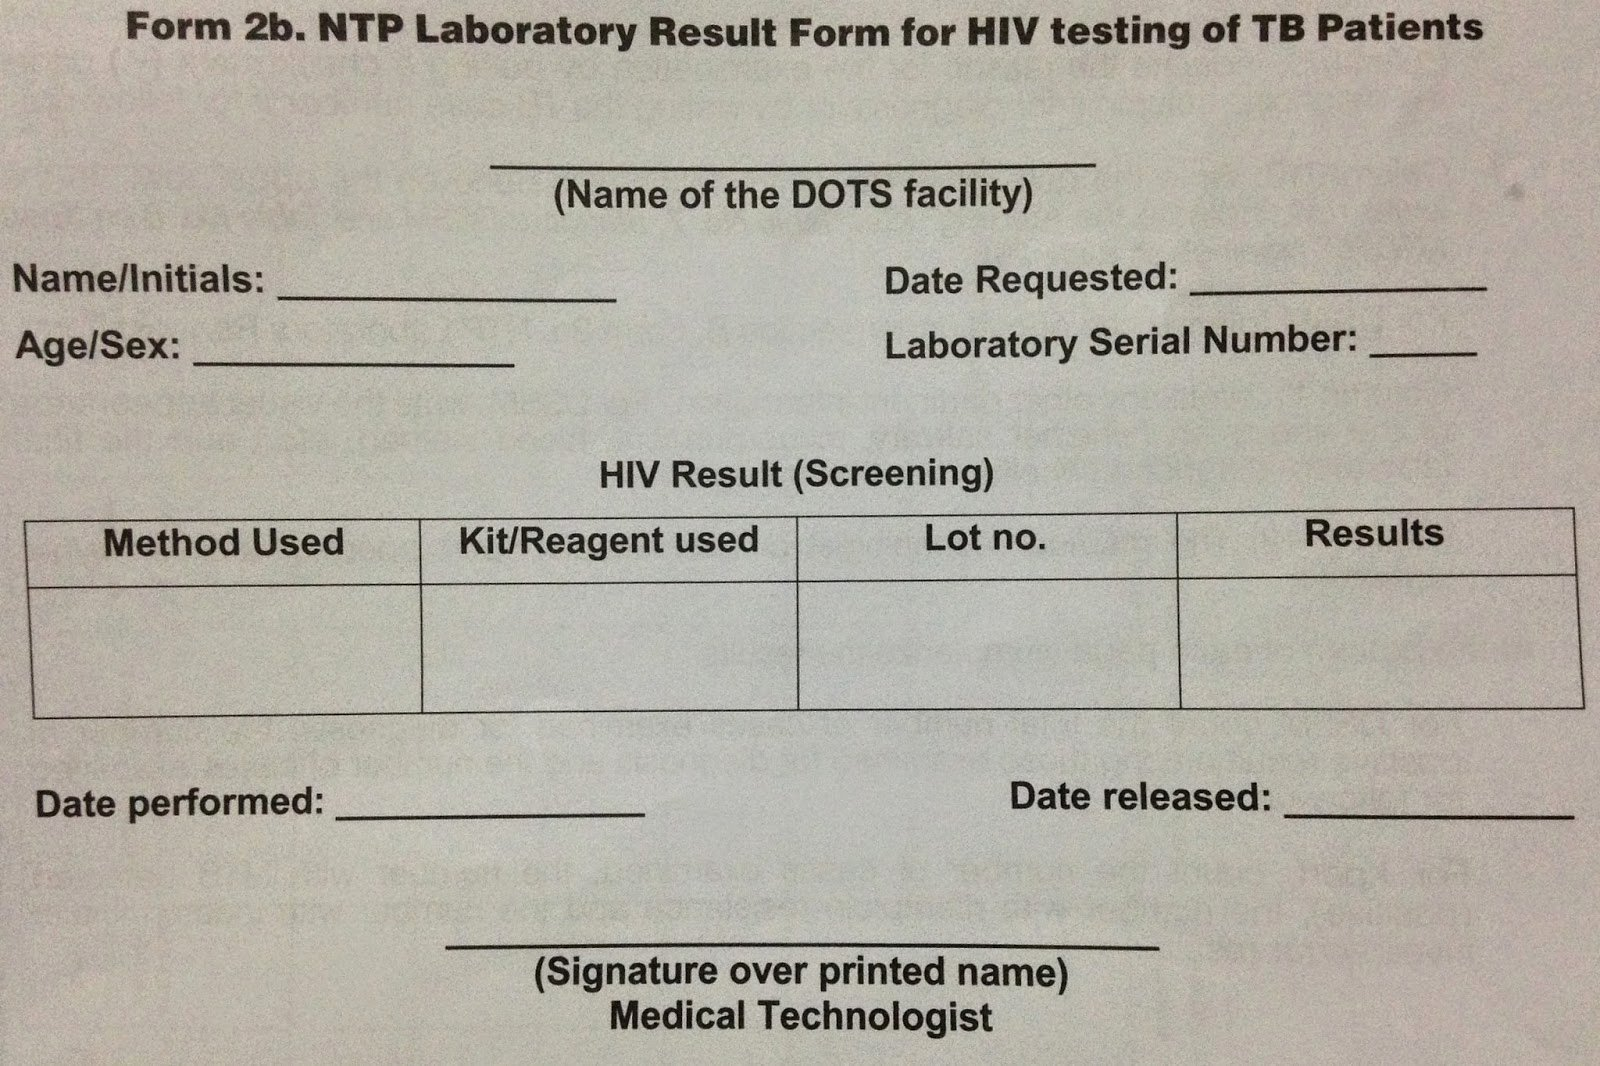 Medical Lab Results Template Luxury Public Health Resources form 2b Ntp Lab Result form for Hiv Testing